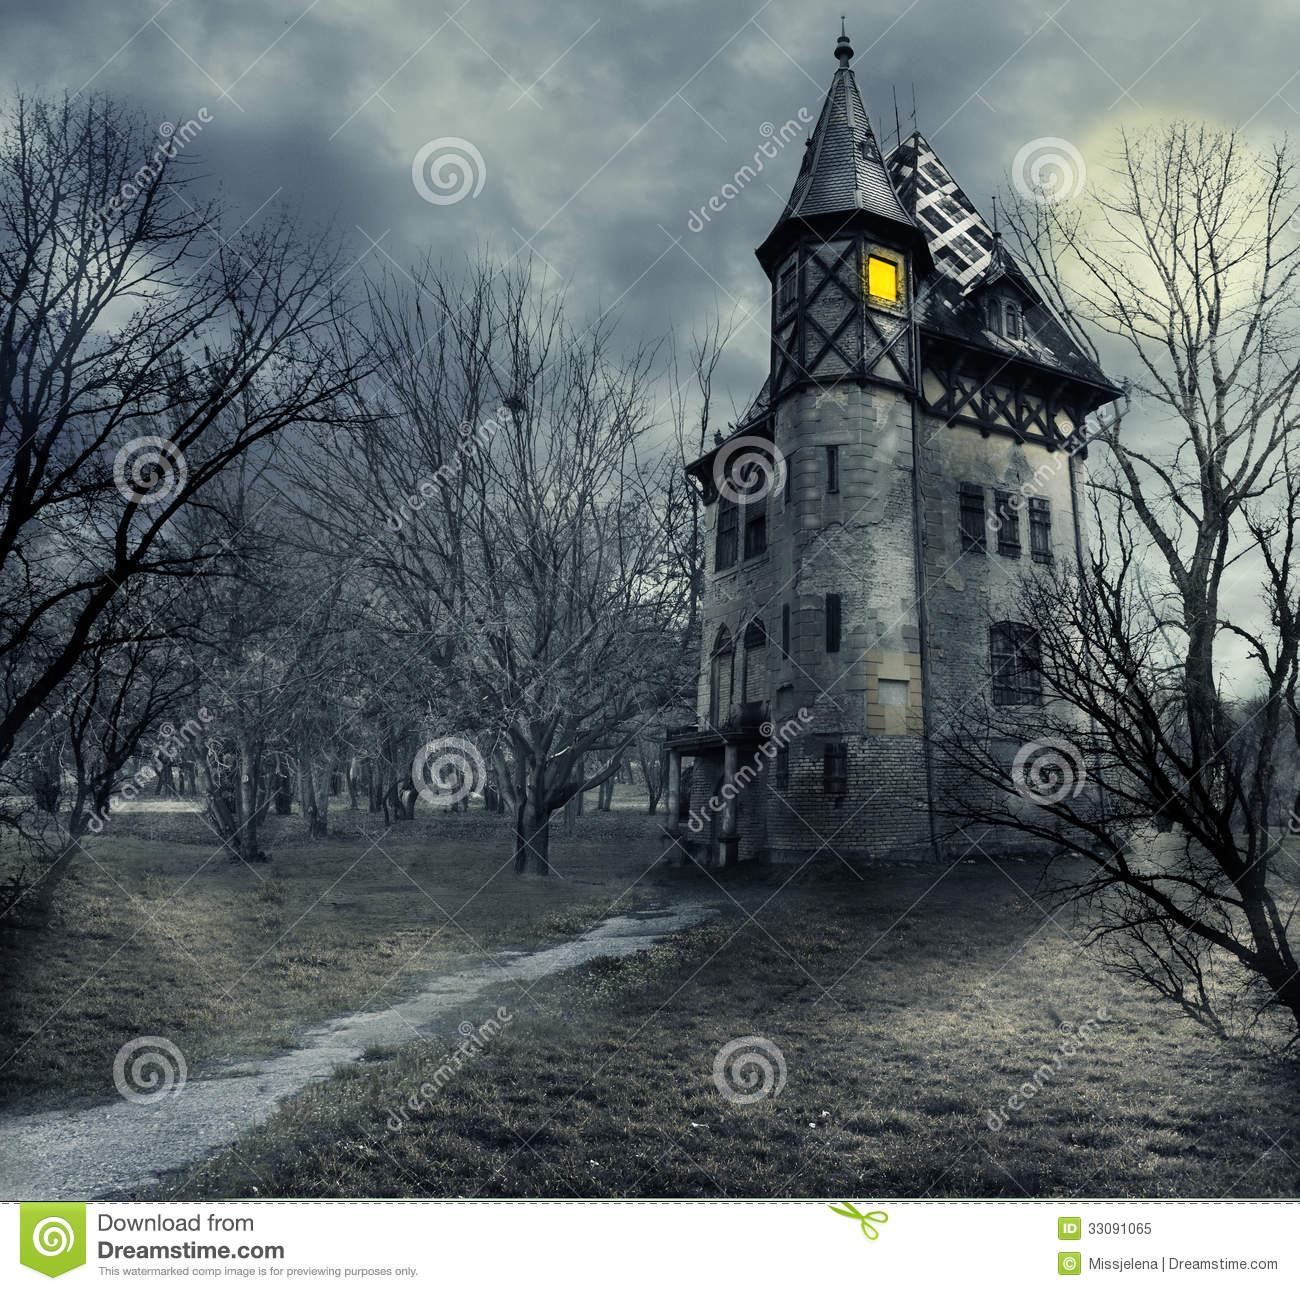 Pin haunted house halloween wallpaper 1920x1080 on pinterest for Pinterest haunted house